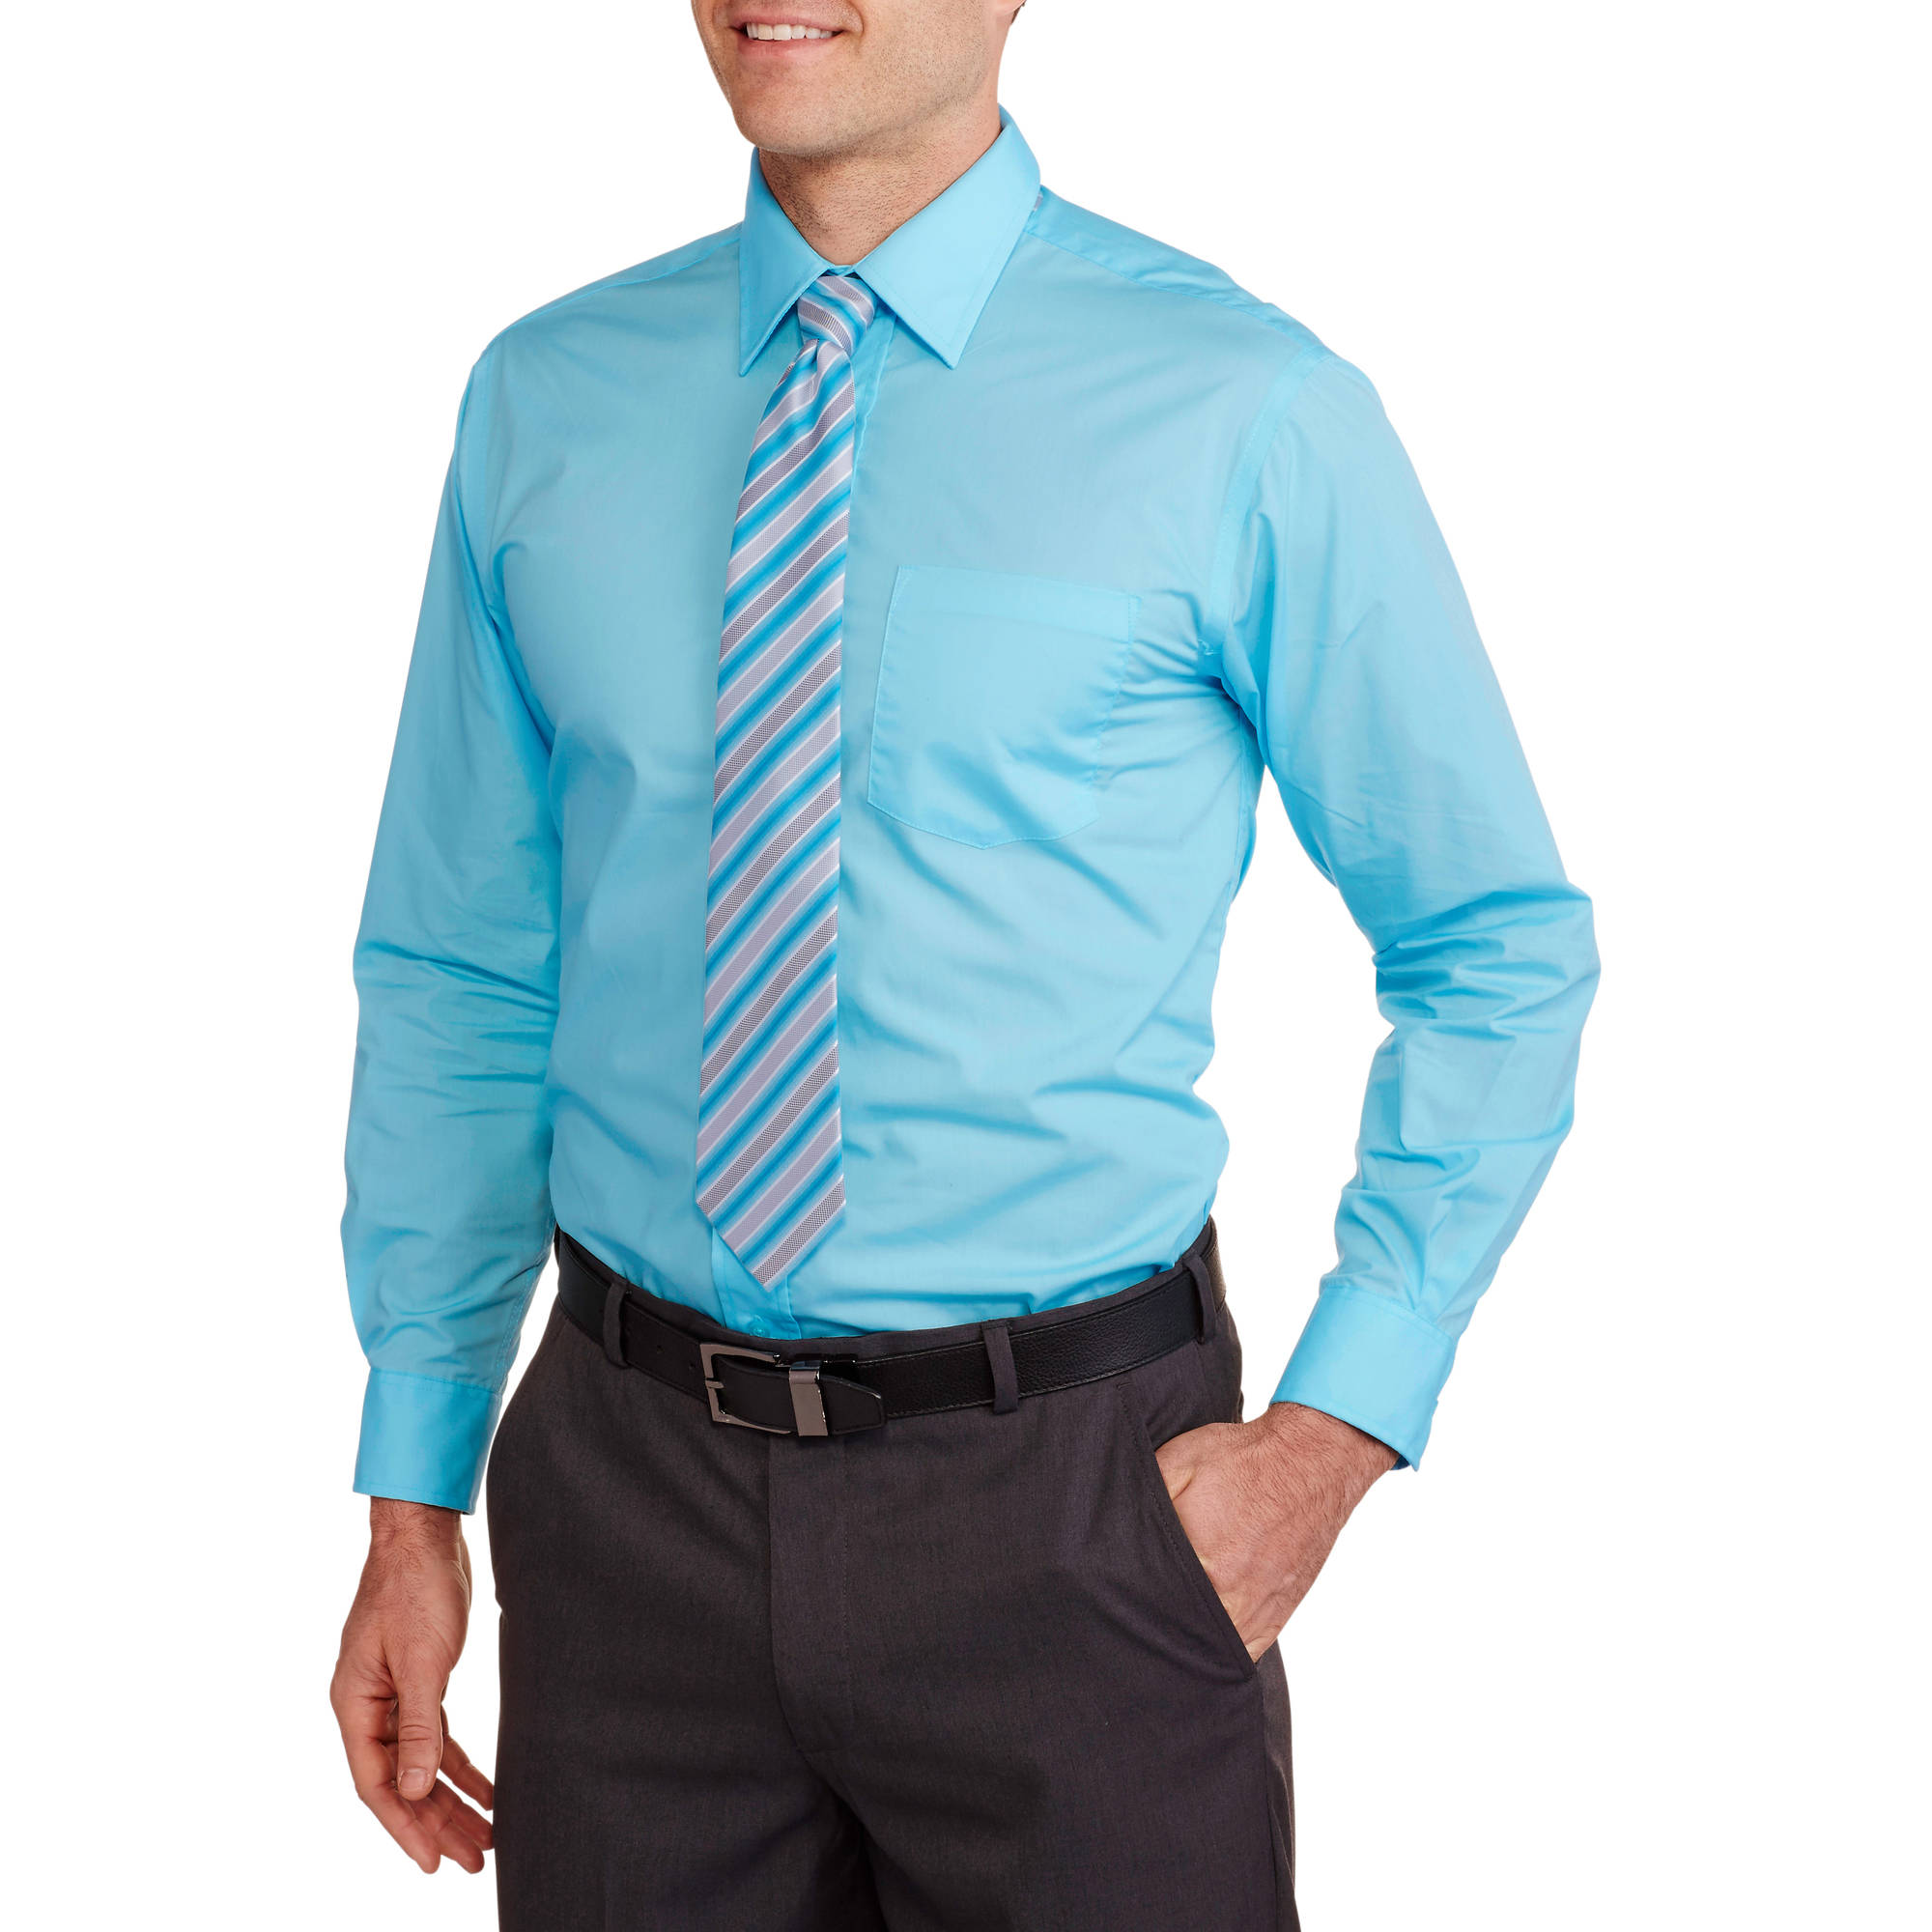 turquoise blue mens dress shirt best dressed